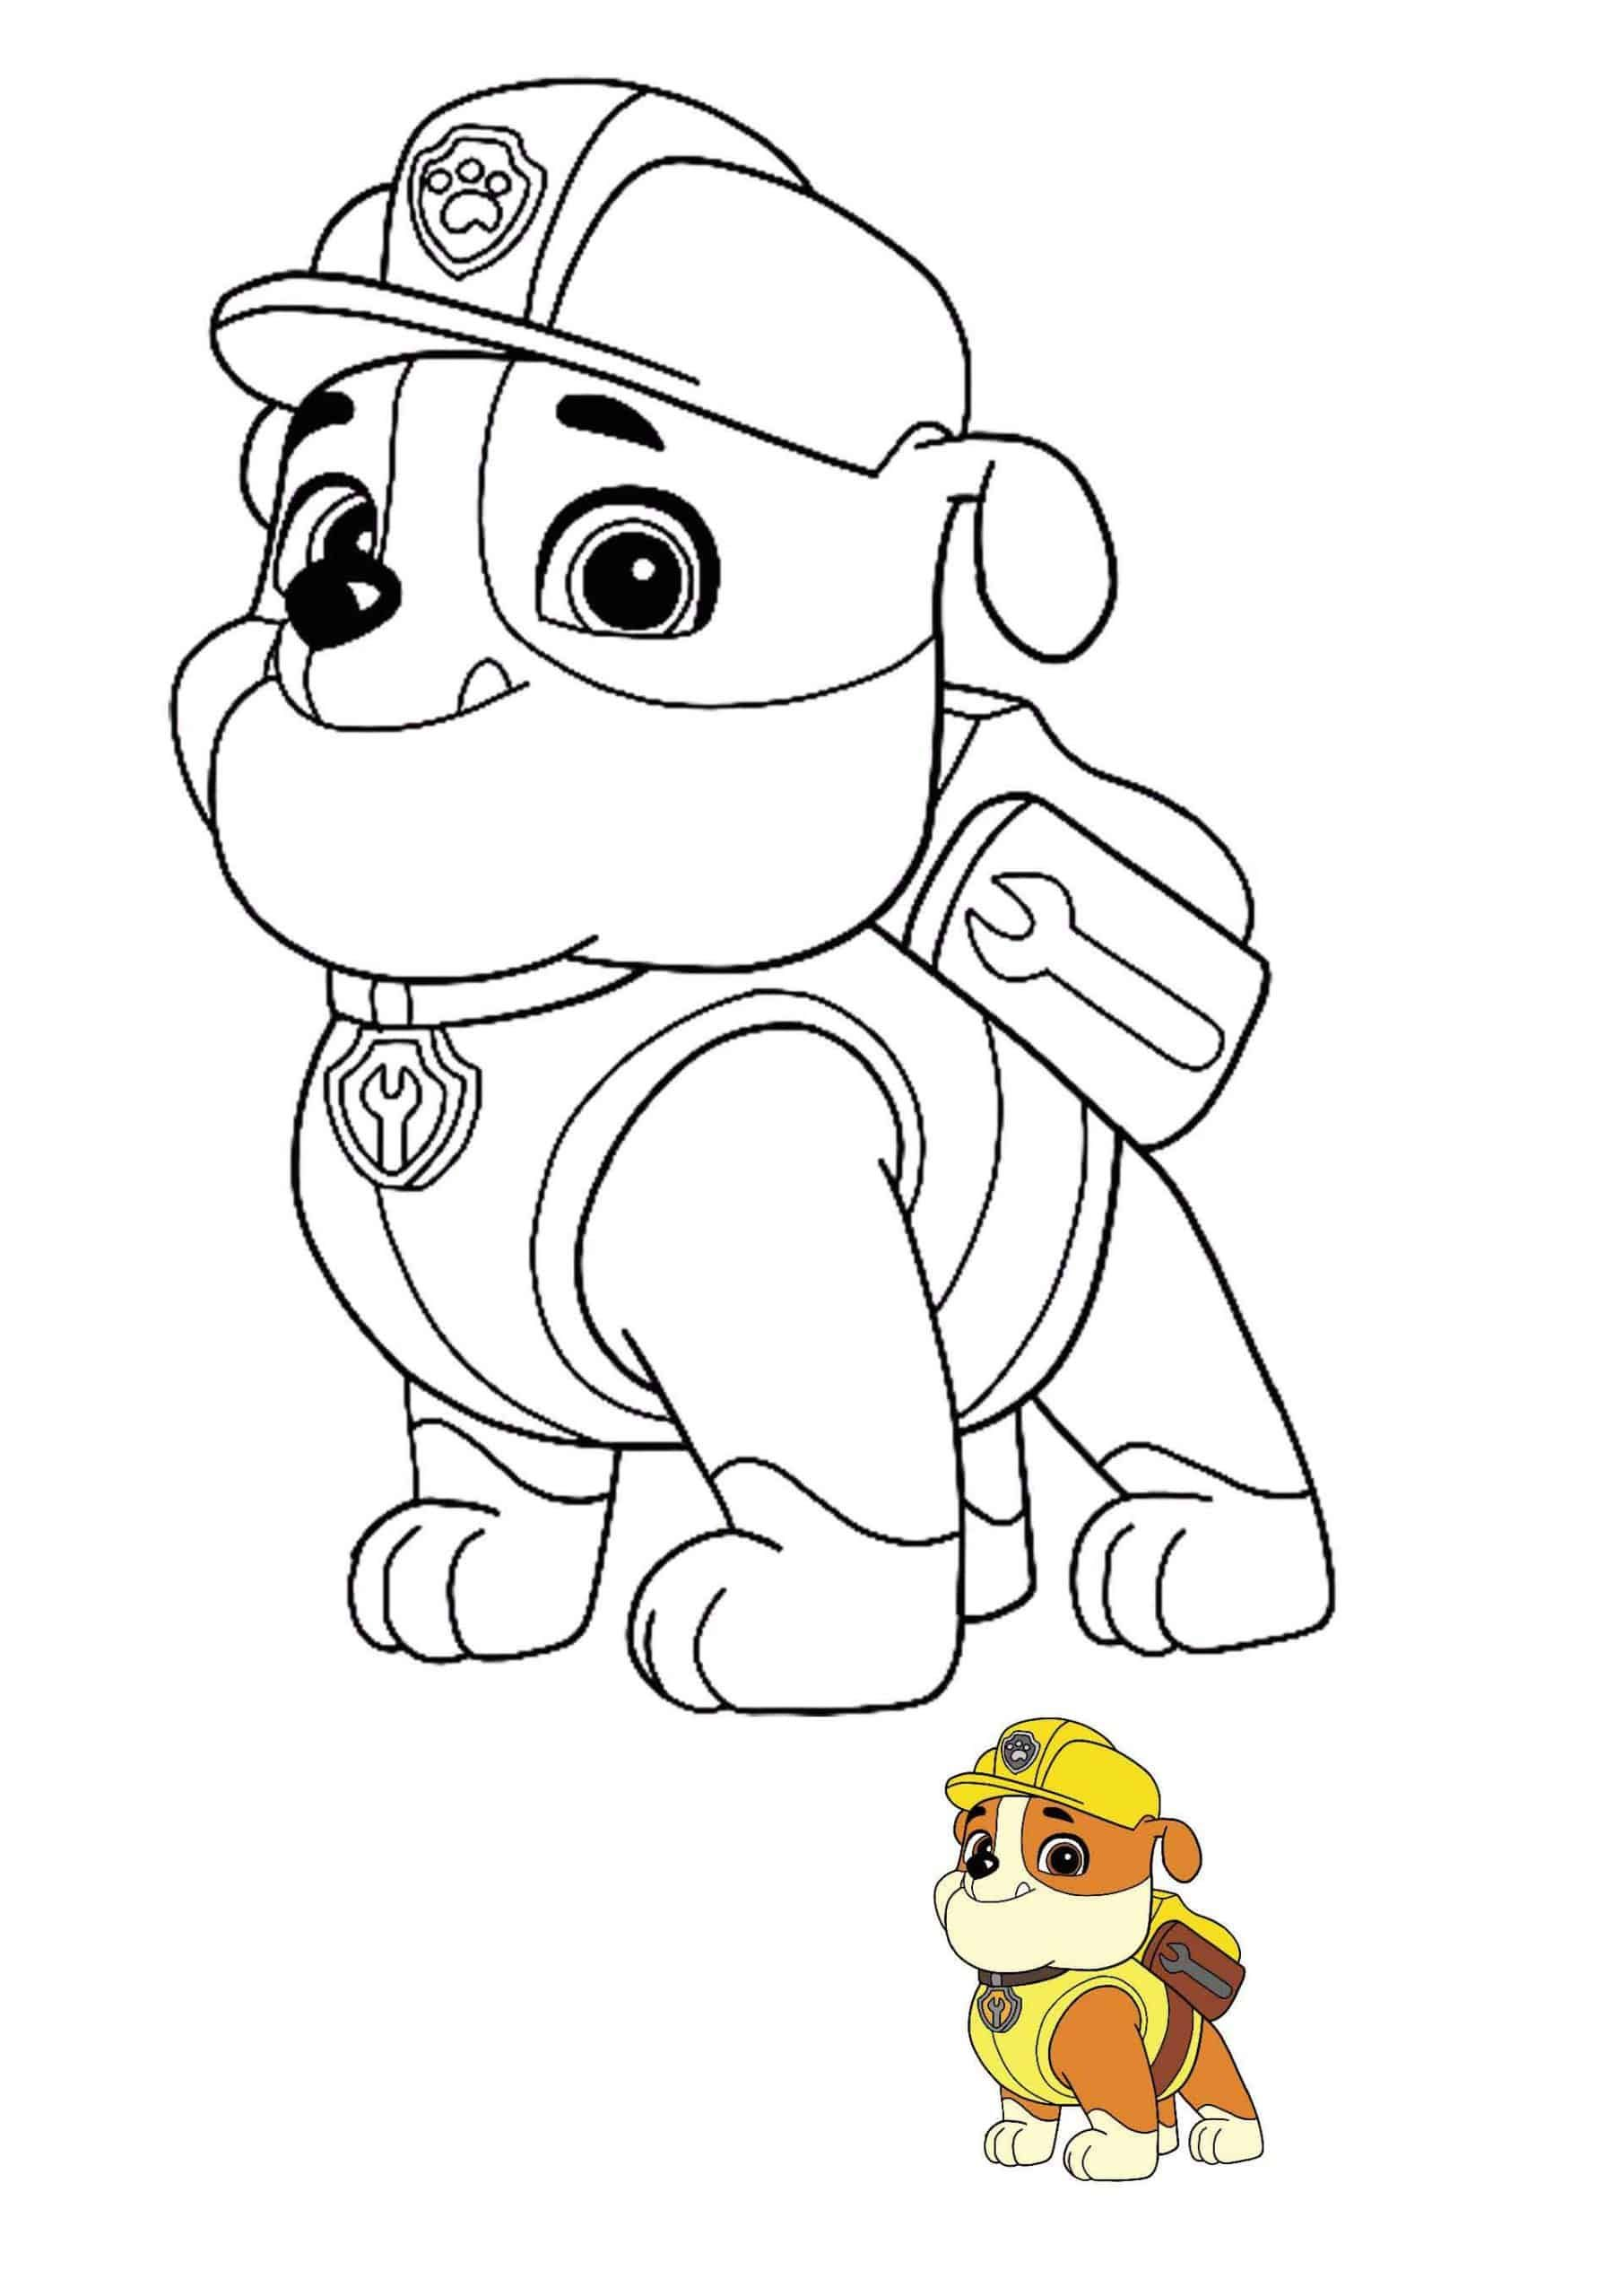 Paw Patrol Rubble Coloring Page With Preview Paw Patrol Coloring Paw Patrol Coloring Pages Paw Patrol